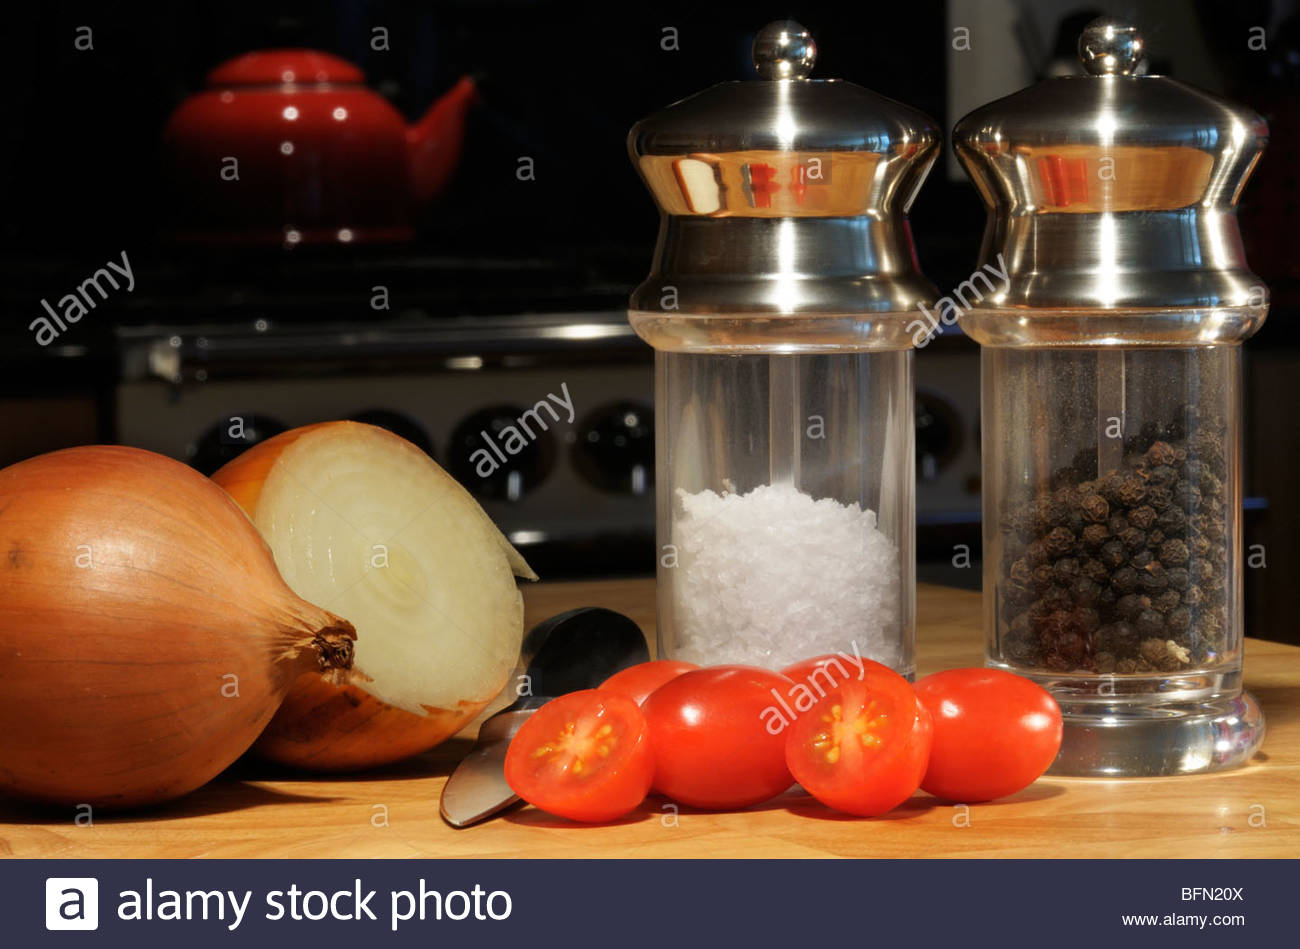 Close up image of onion and tomatoes with salt and pepper mills on a chopping board, Dorset, England, UK - Stock Image